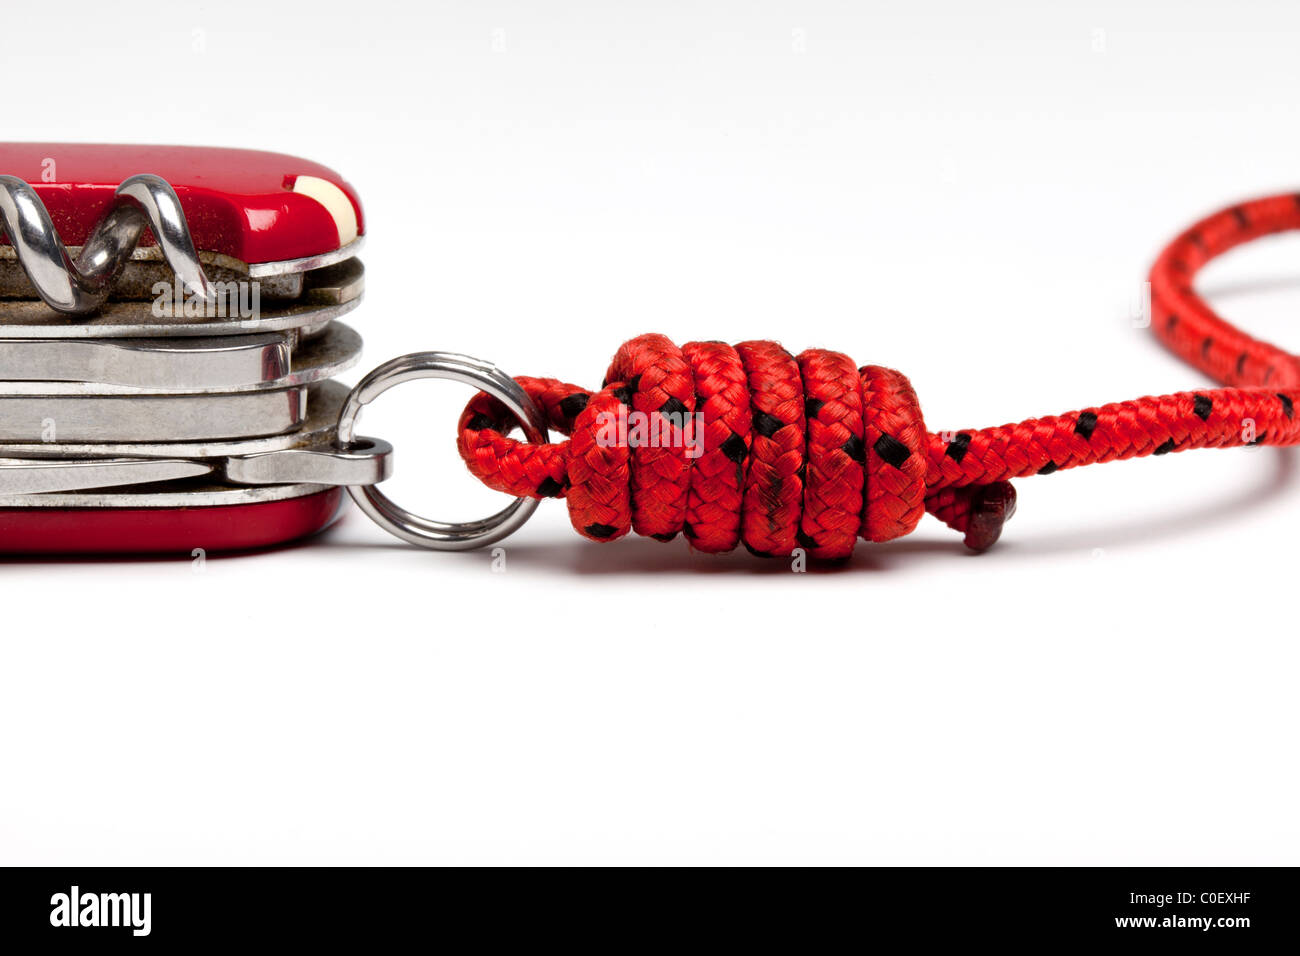 Swiss Army Knife, attached to a cord using a half blood knot. - Stock Image